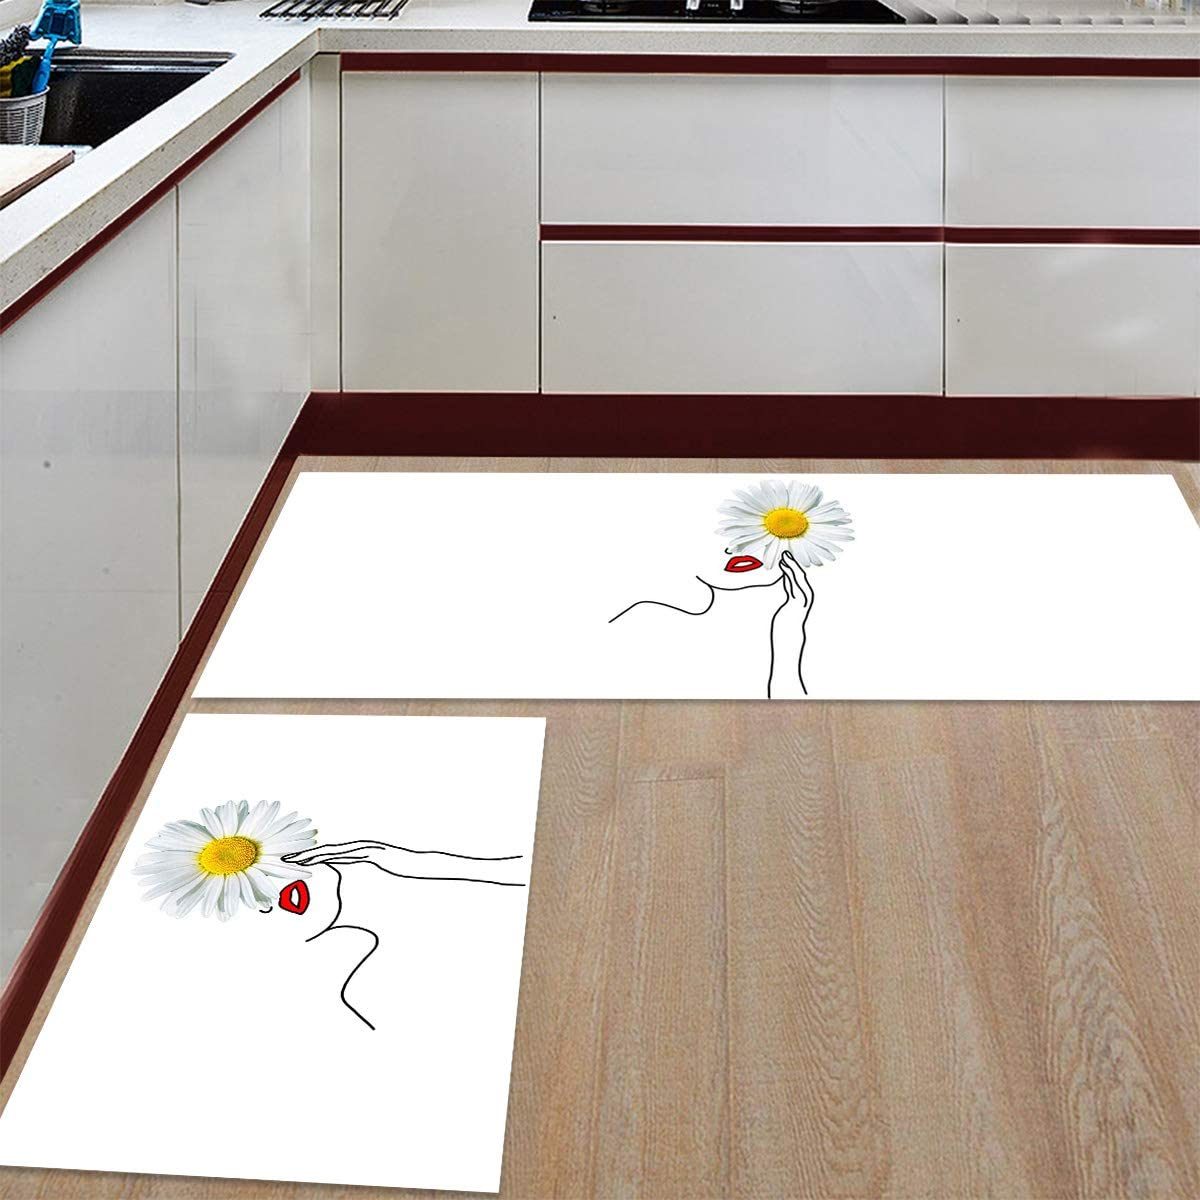 Advancey 2 Pieces Anti-Slip Kitchen White Department store Bargain Mats Daisy and Flowers